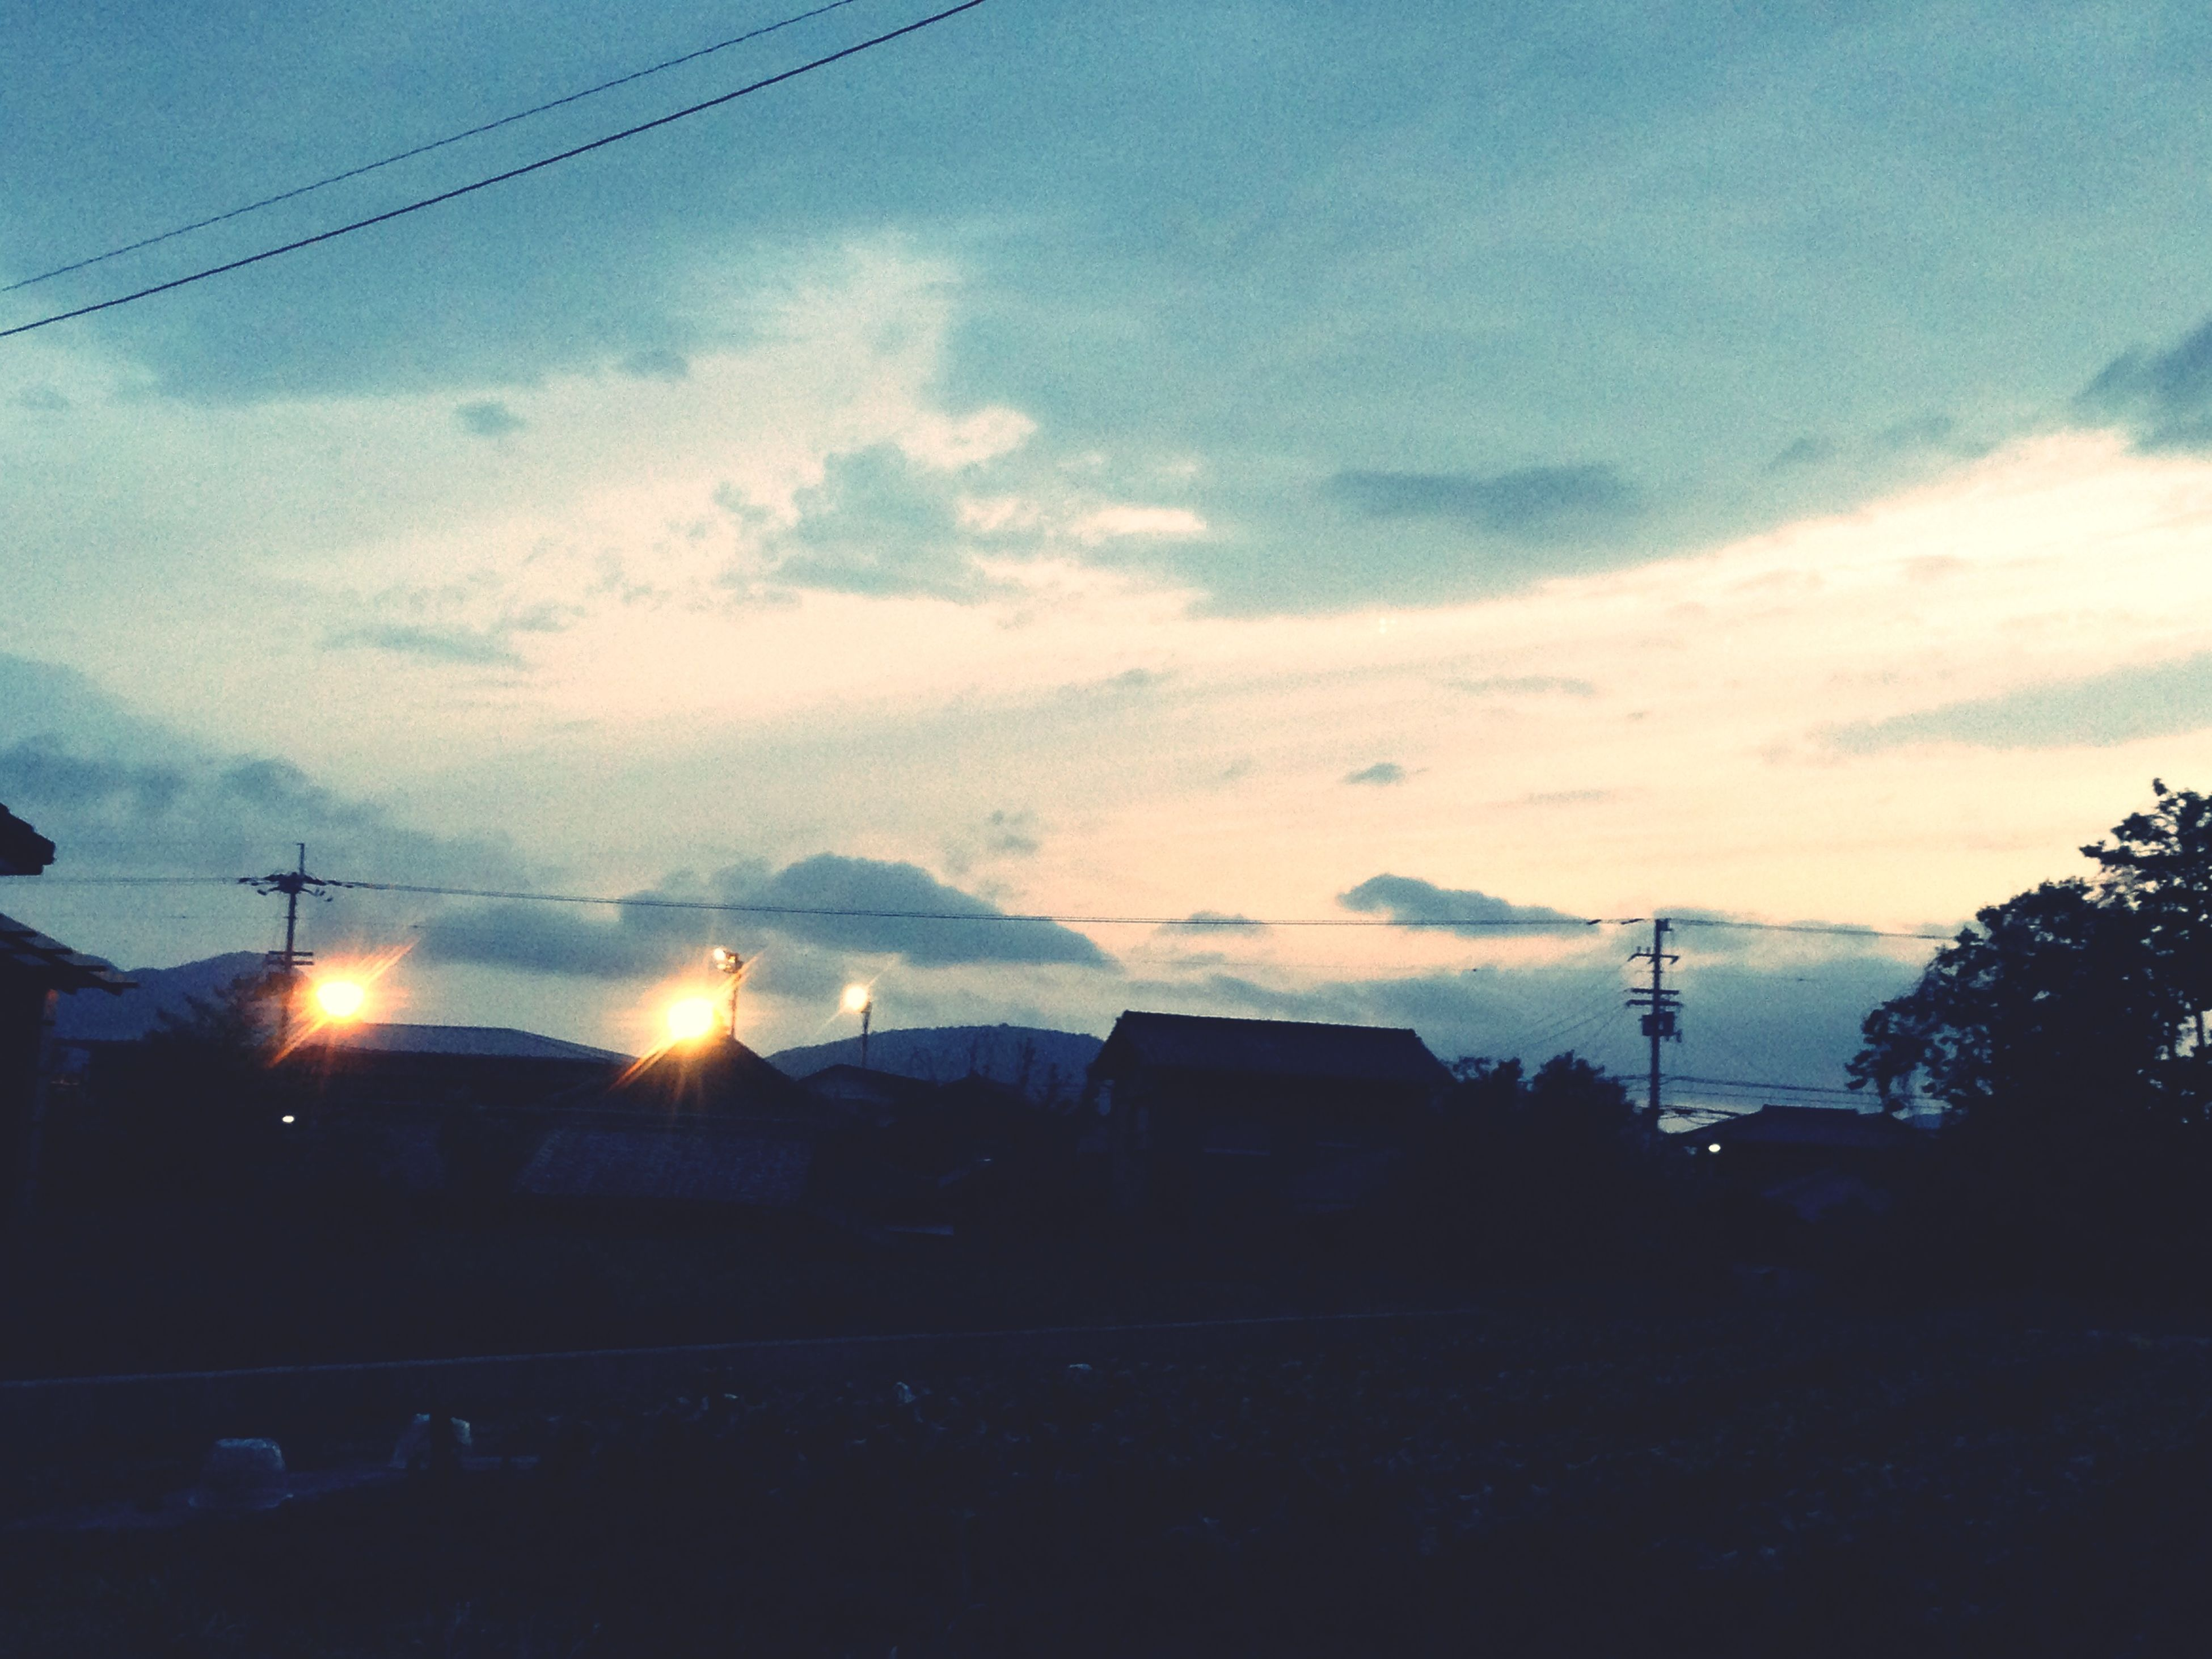 power line, sky, electricity pylon, building exterior, silhouette, electricity, built structure, architecture, cable, power supply, cloud - sky, sunset, house, low angle view, fuel and power generation, connection, cloud, power cable, tree, dusk